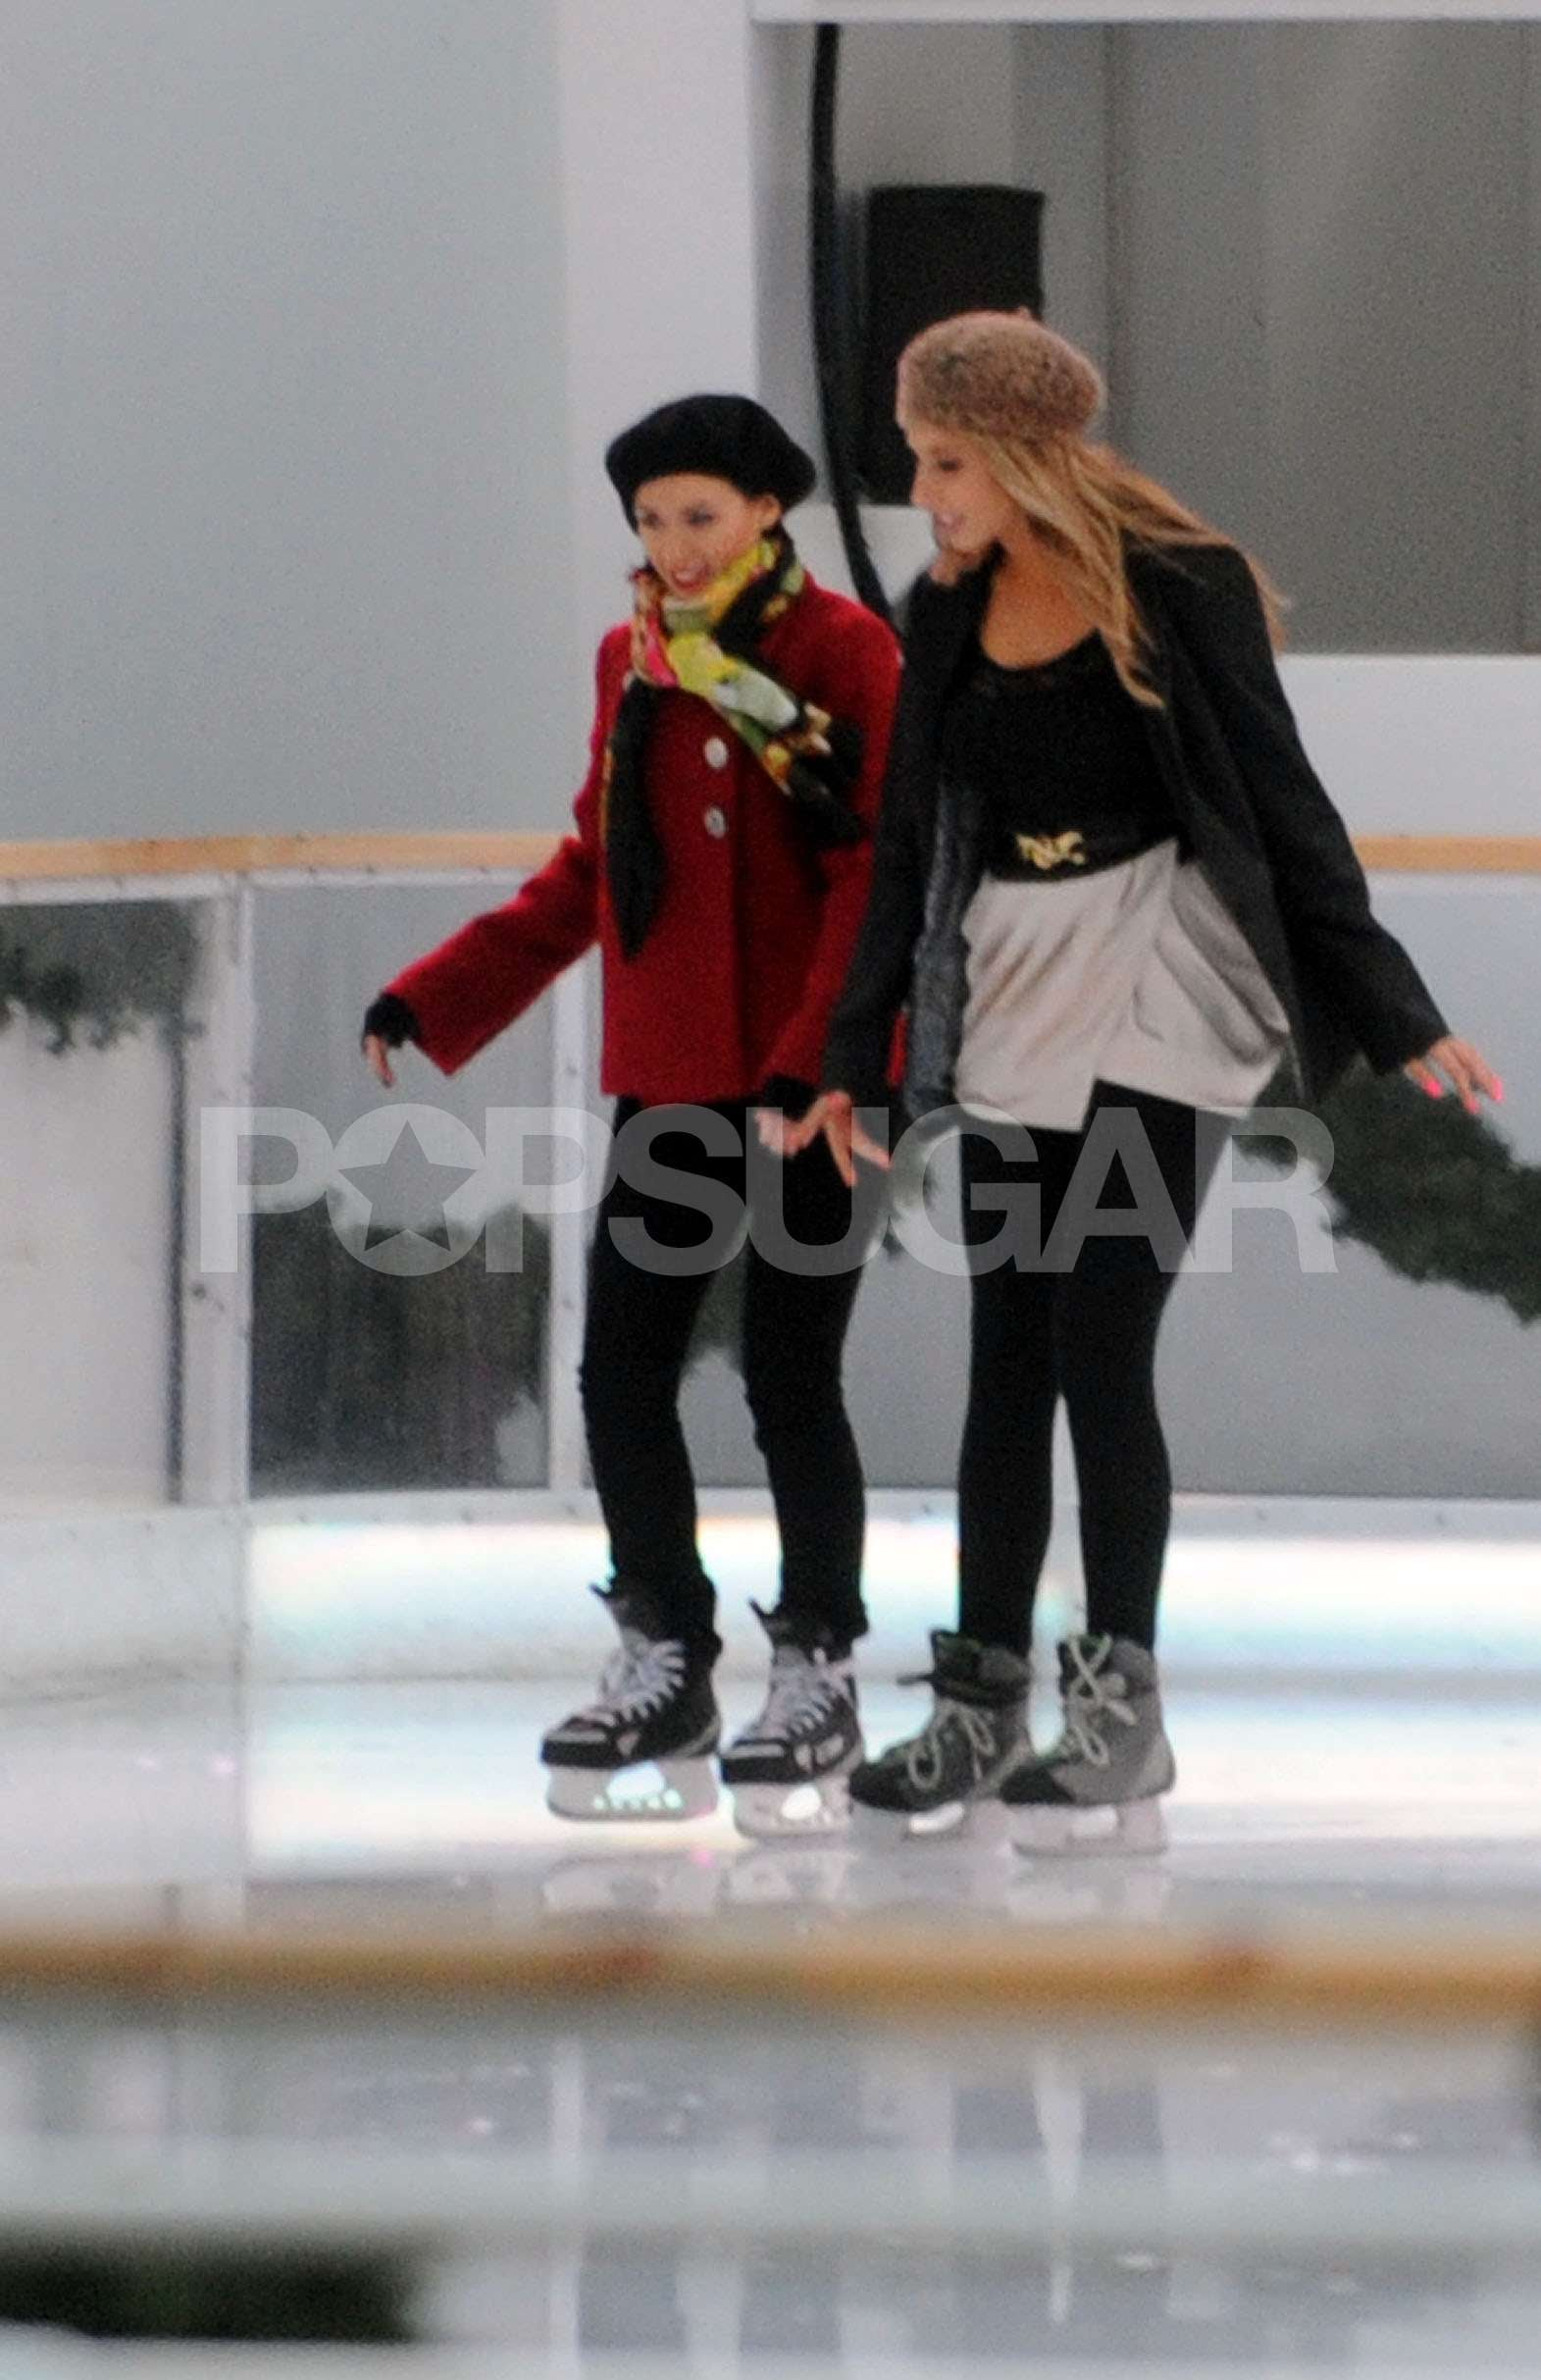 photos of x factor stacey solomon and olly murs plus stacey ice image